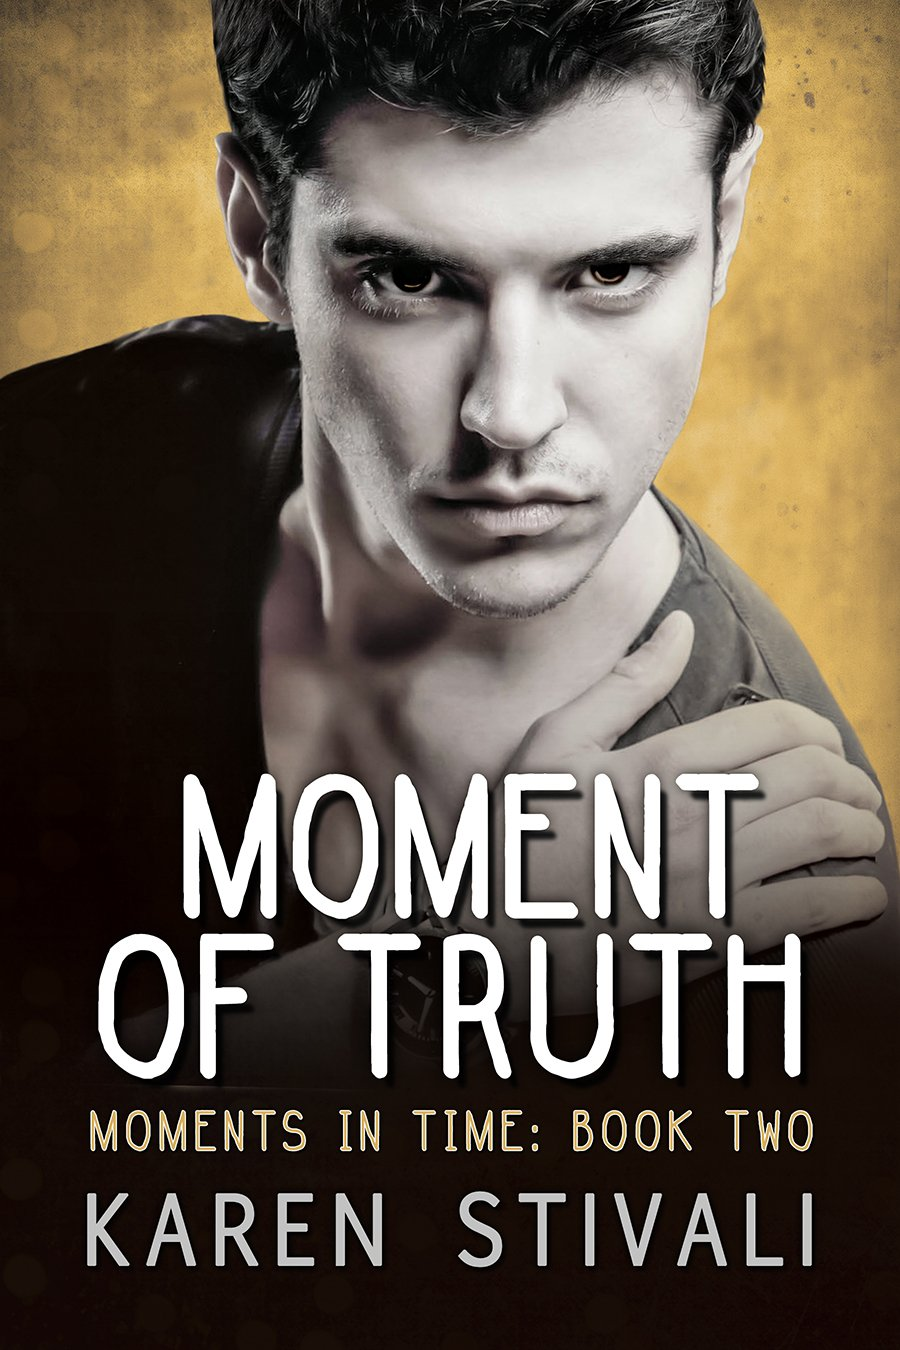 Moment of Truth – Karen Stivali – 4.5 stars